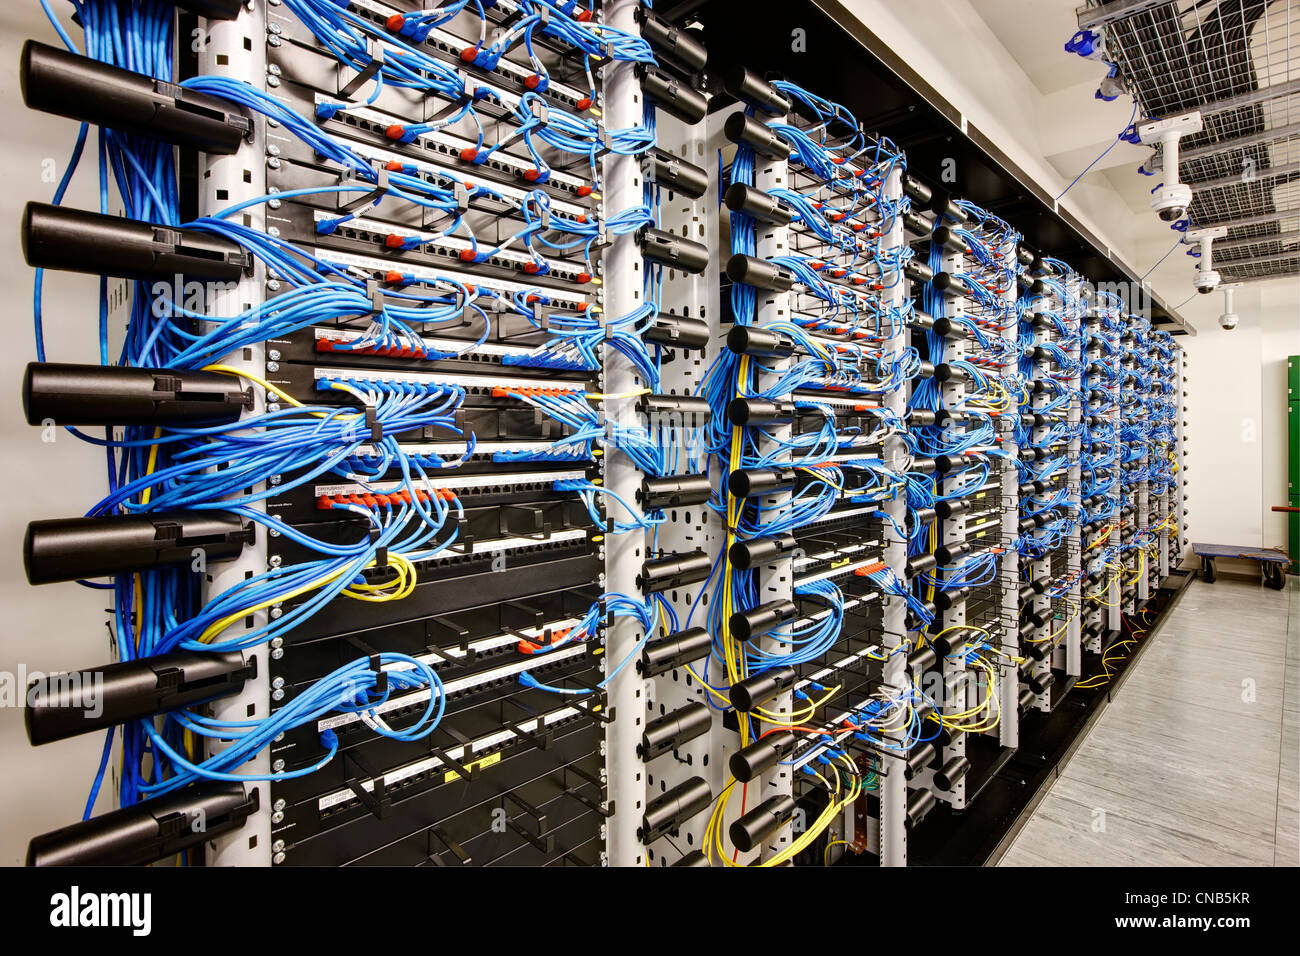 hight resolution of wall of network cabling blue bank computer room stock image